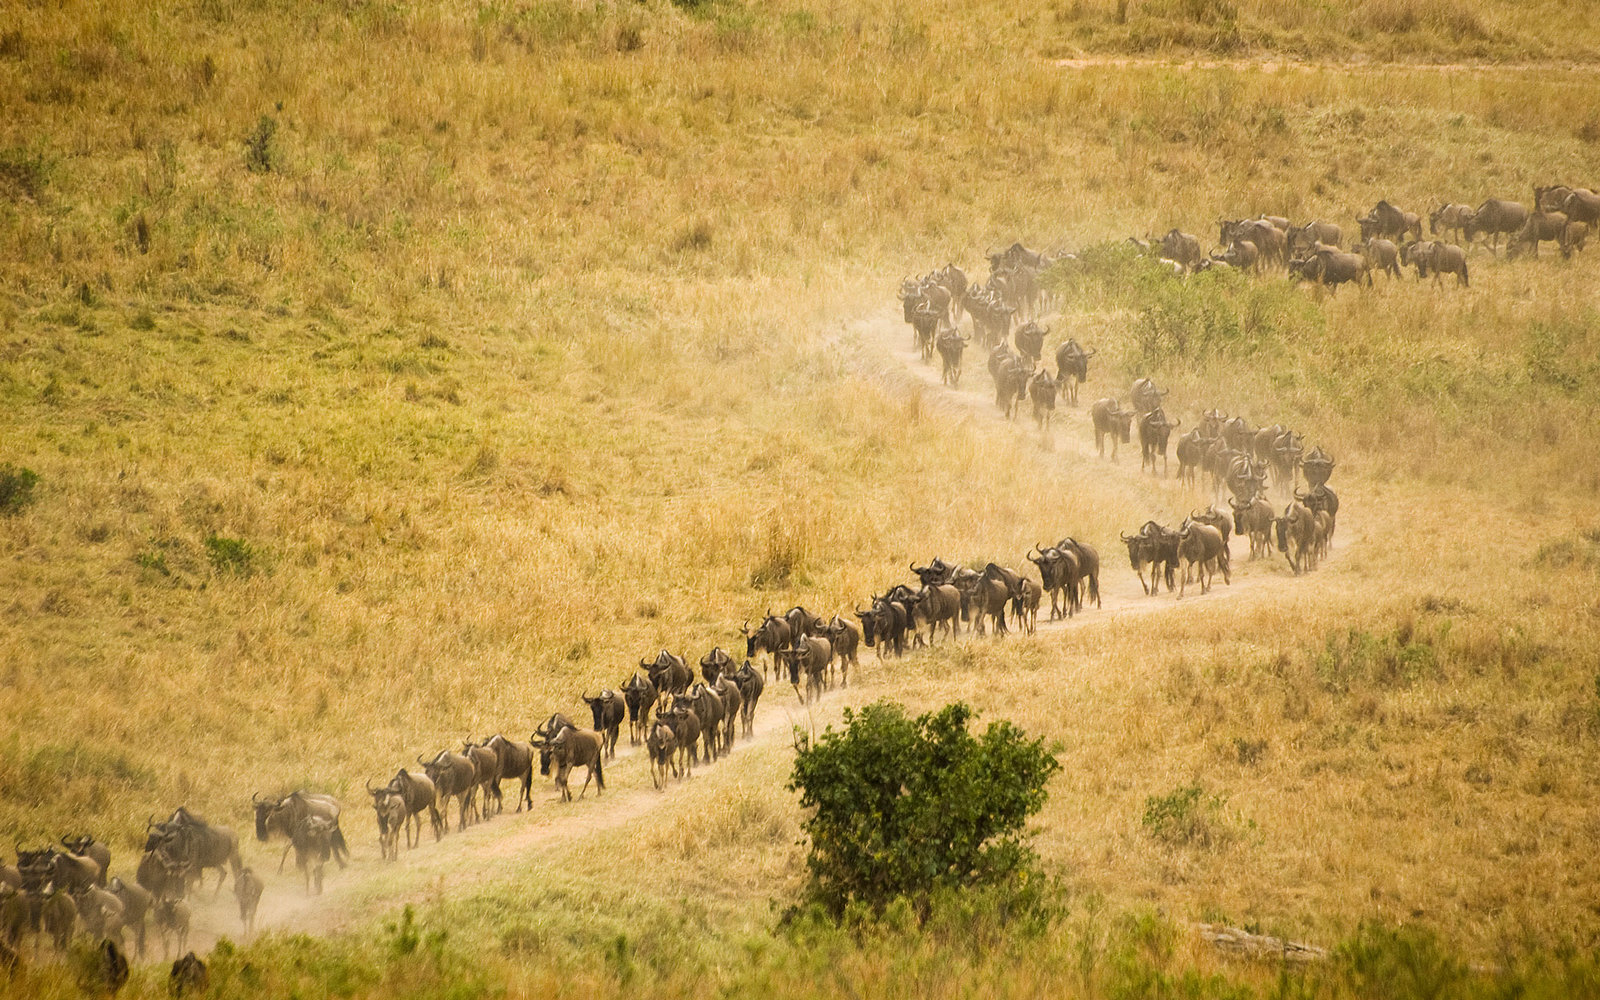 Wildebeests migration Maasai Mara National Reserve Kenya